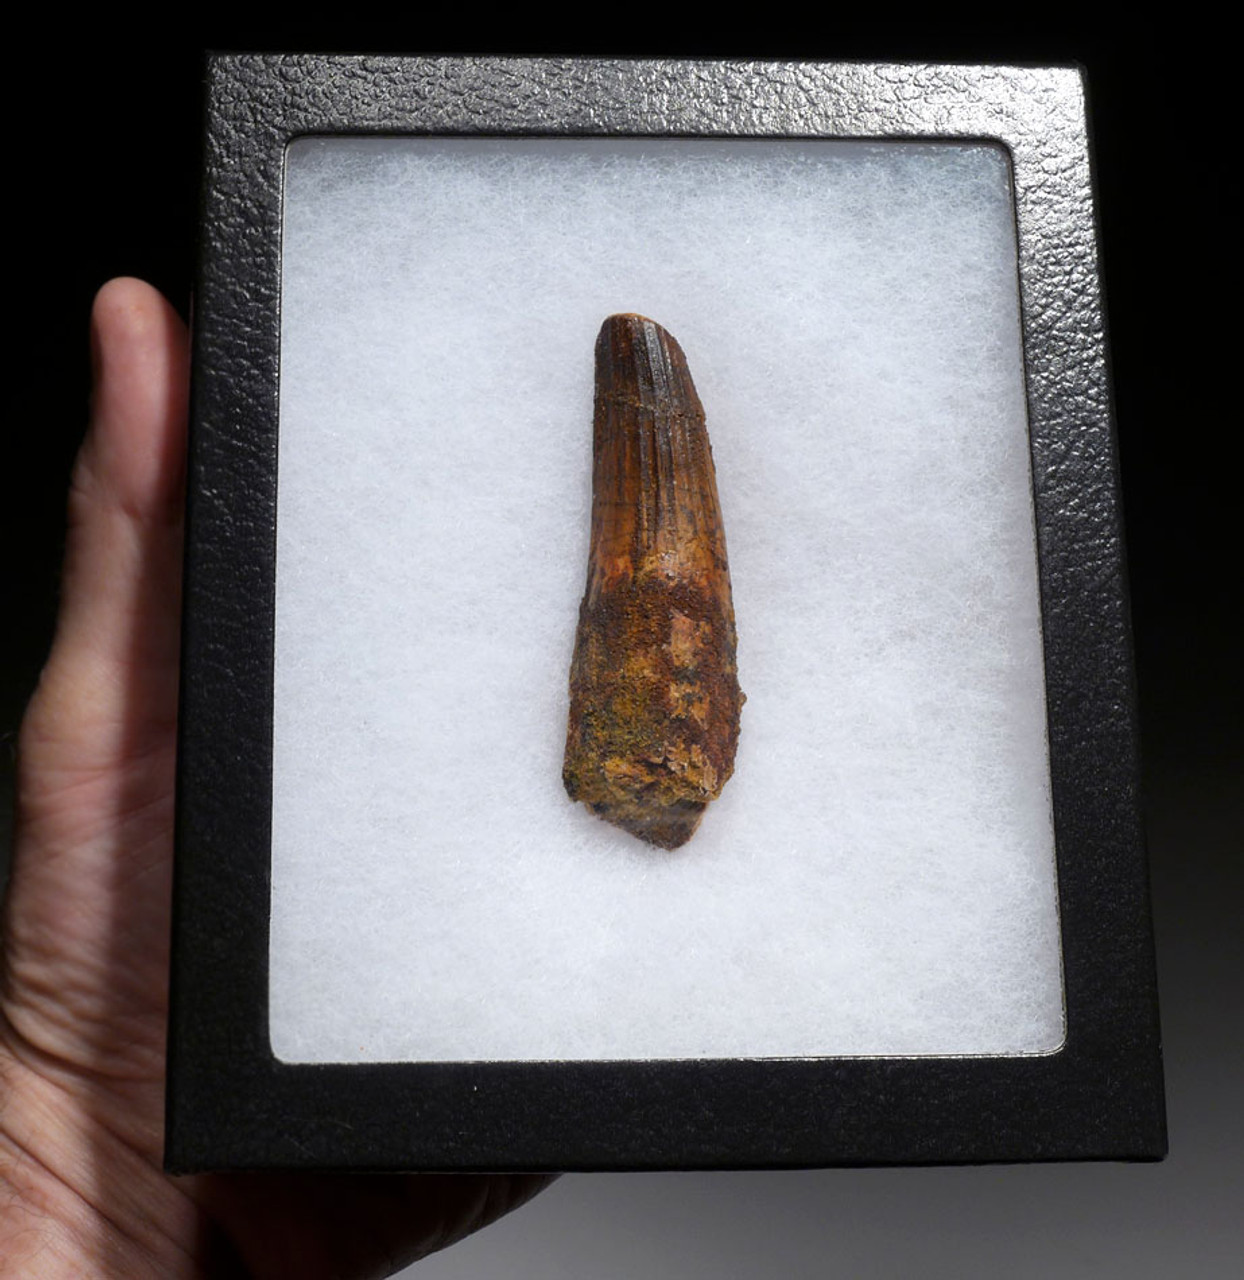 2.75 INCH FOSSIL DINOSAUR TOOTH FROM A LARGE SPINOSAURUS *DT5-475